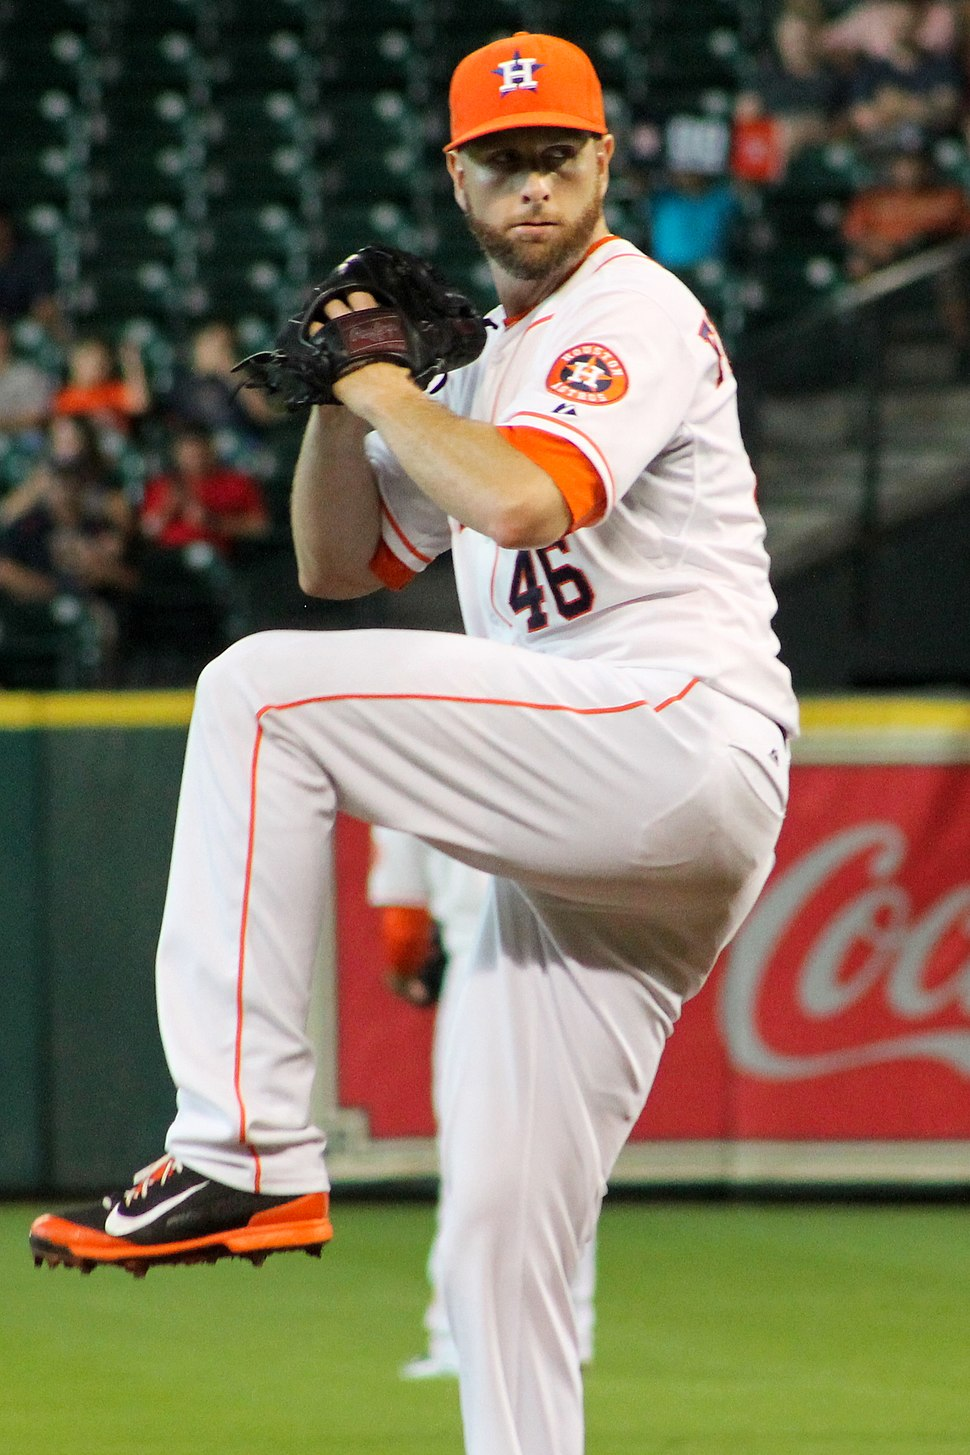 Scott Feldman at Minute Maid Park in August 2014